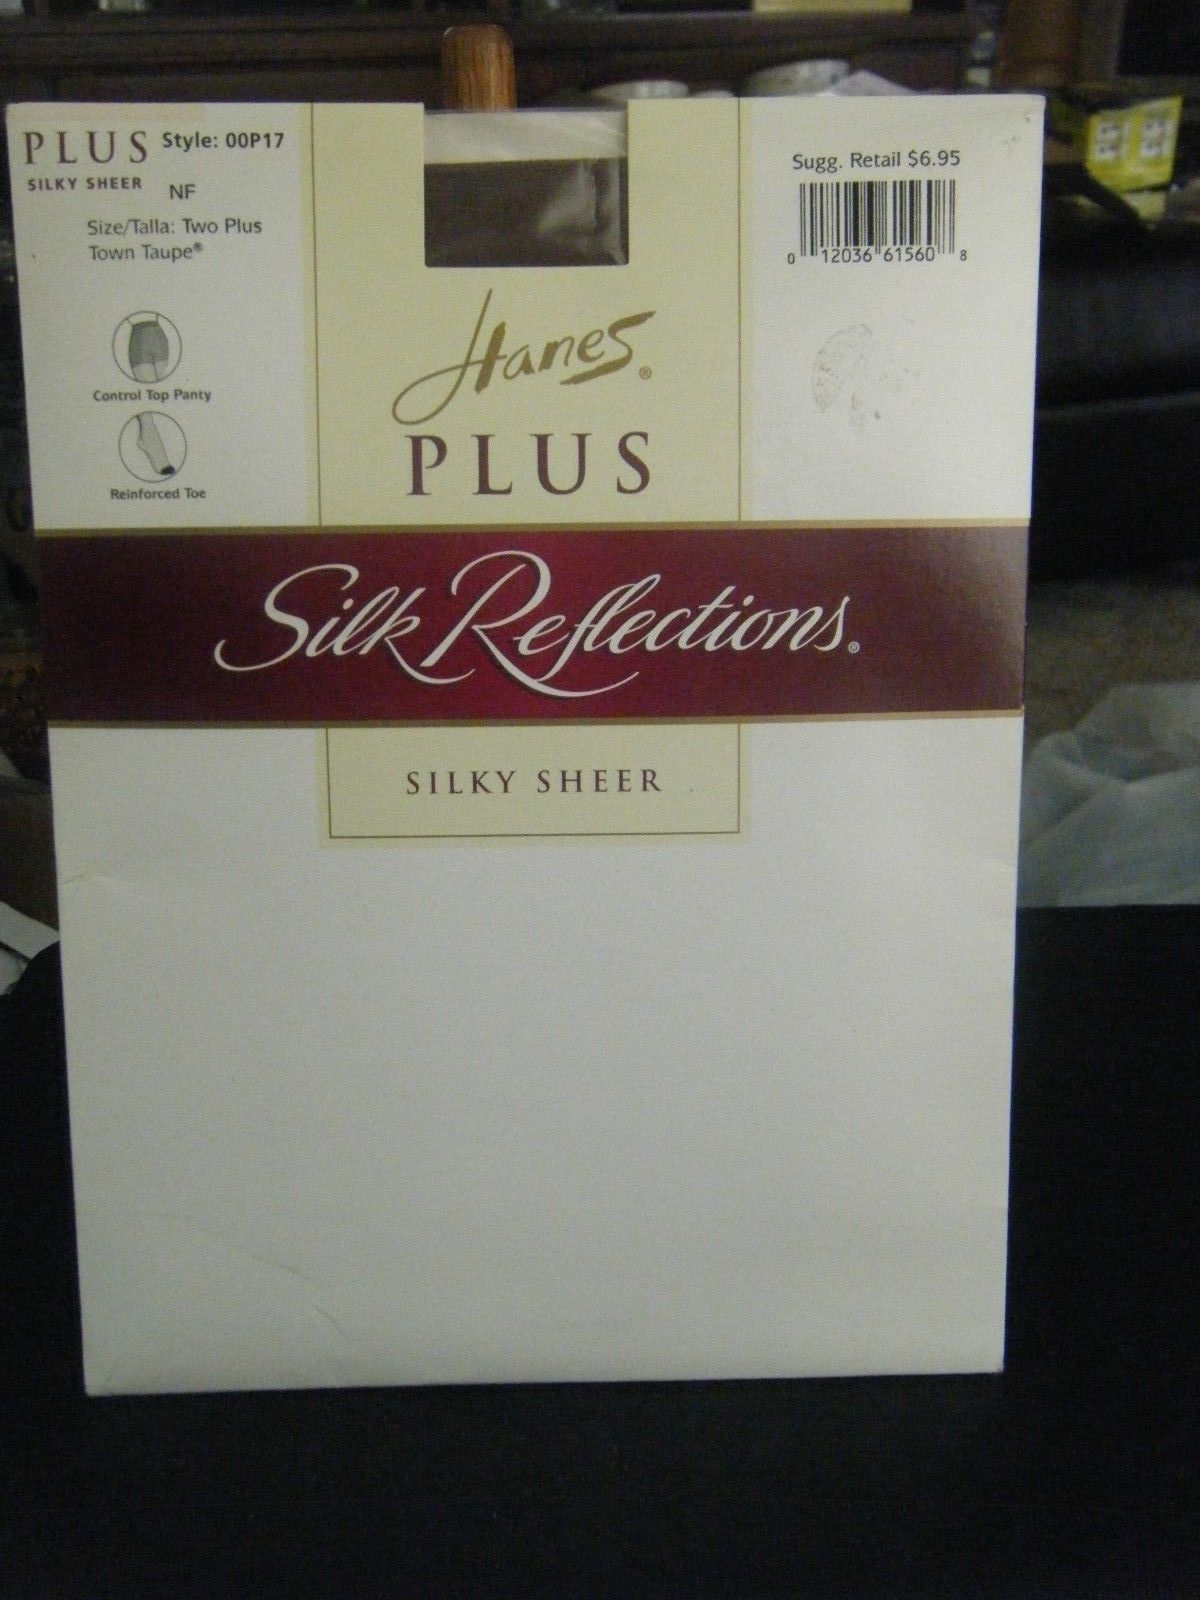 f1e452247a4ea S l1600. S l1600. Hanes Plus Silk Reflections Control Top Pantyhose - Size  2 Plus - Town Taupe. Free Shipping